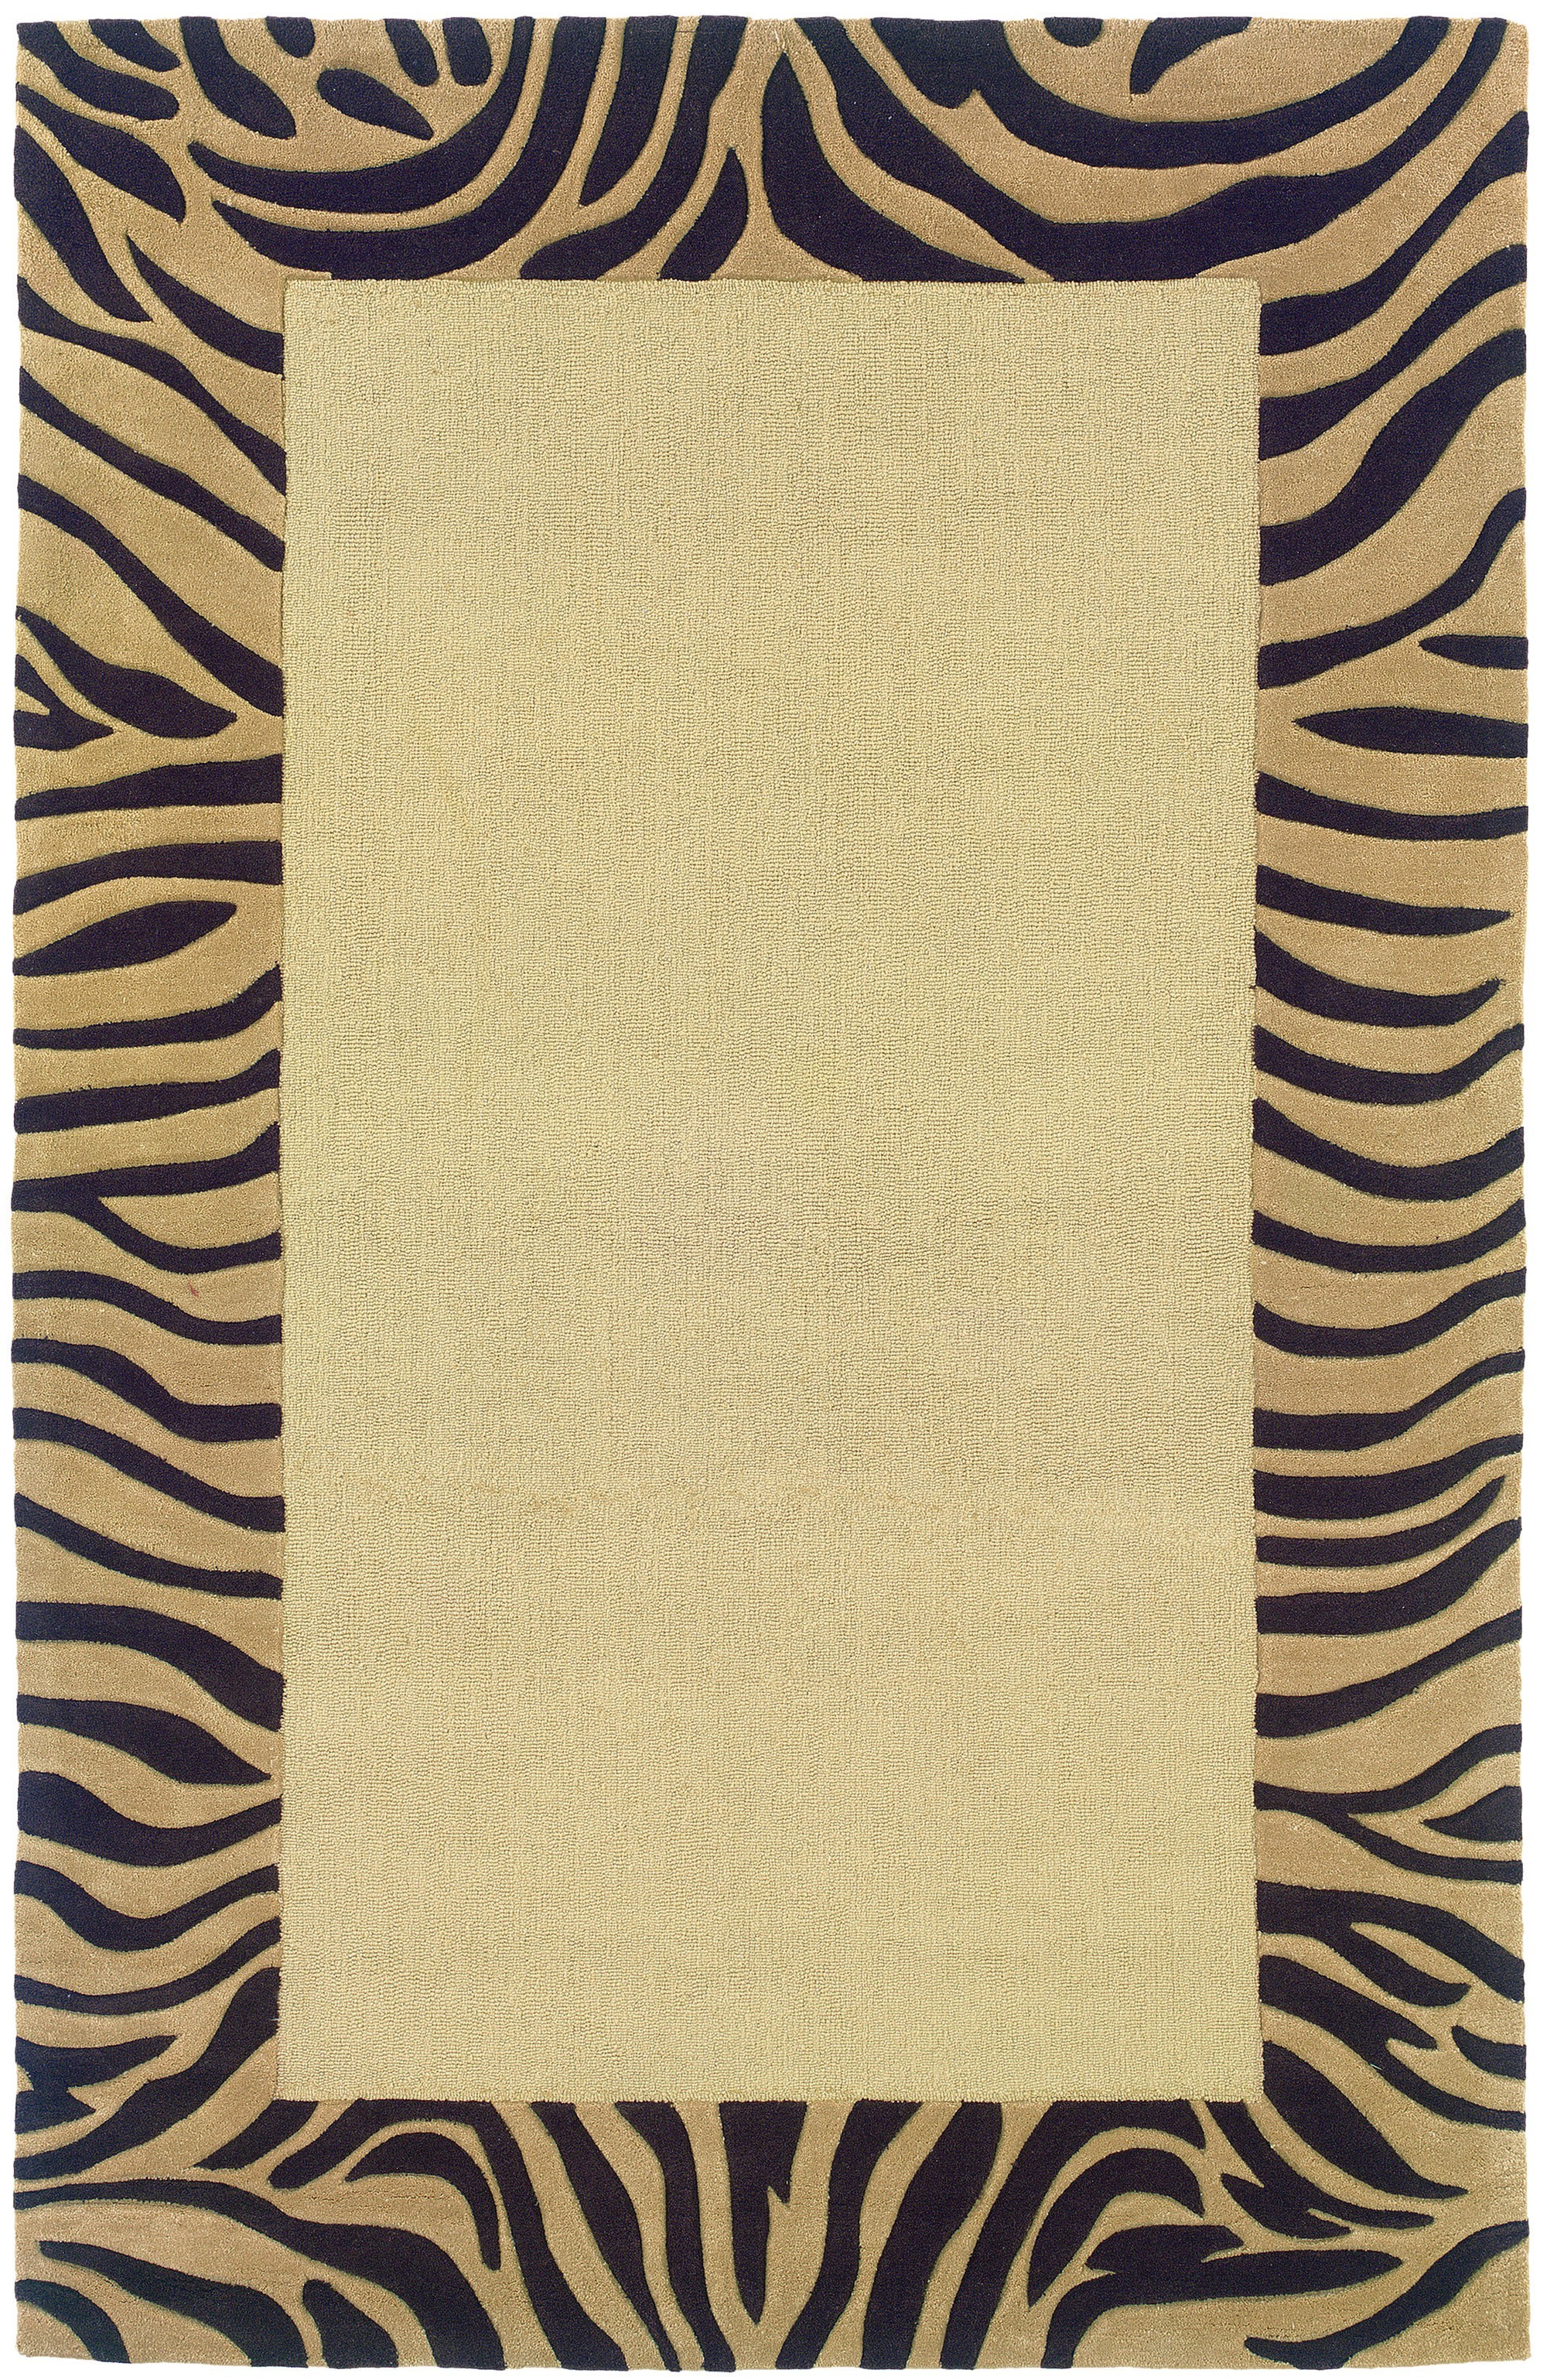 30 zebra print border . Free cliparts that you can download to you ...